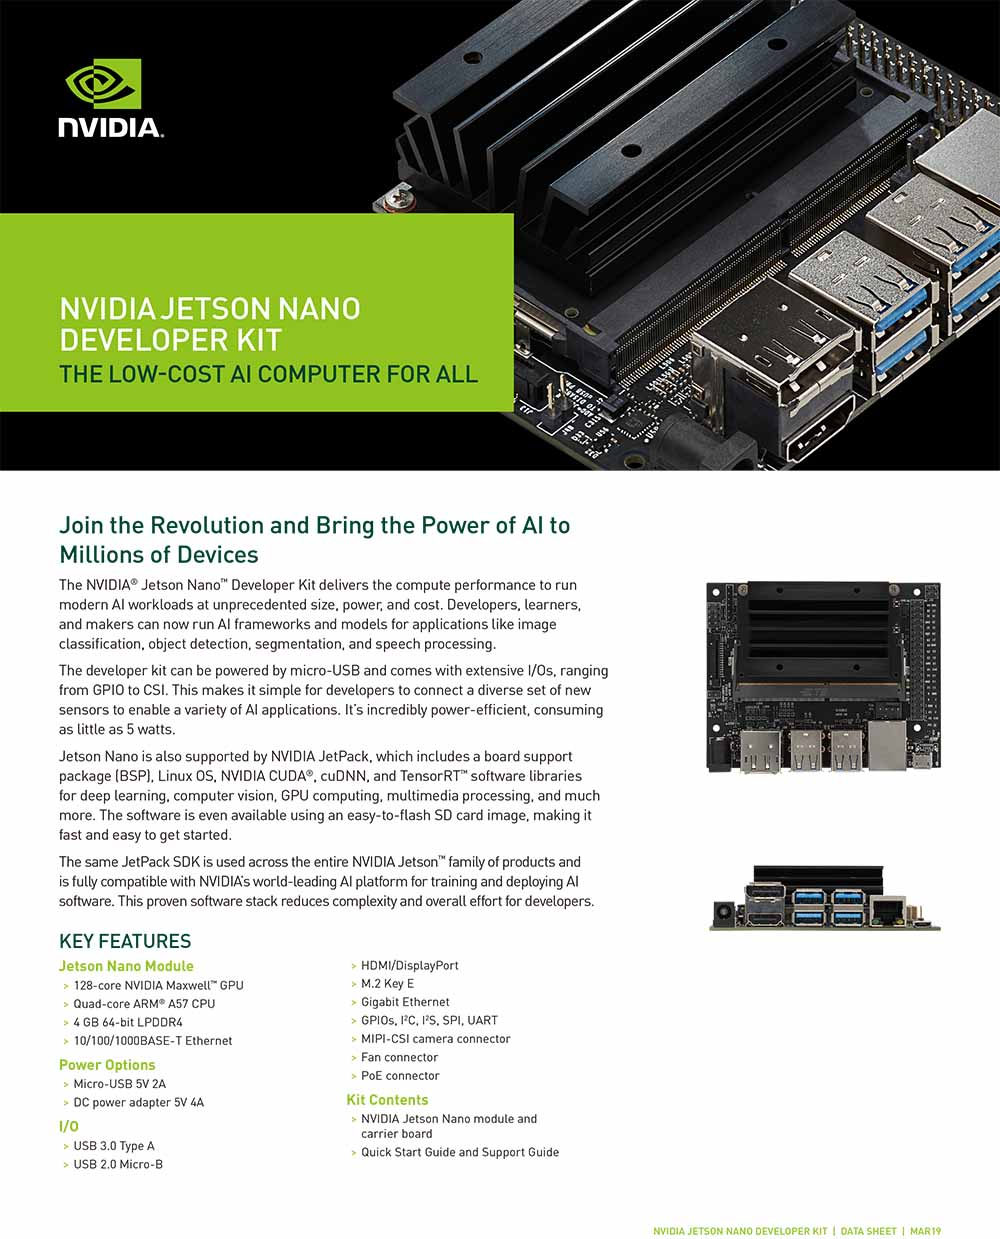 NVIDIA Jetson Nano Developer Kit per Artiticial di Intelligenza Apprendimento Profonda AI Computing, Supporto PyTorch, TensorFlow Jetbot - 6